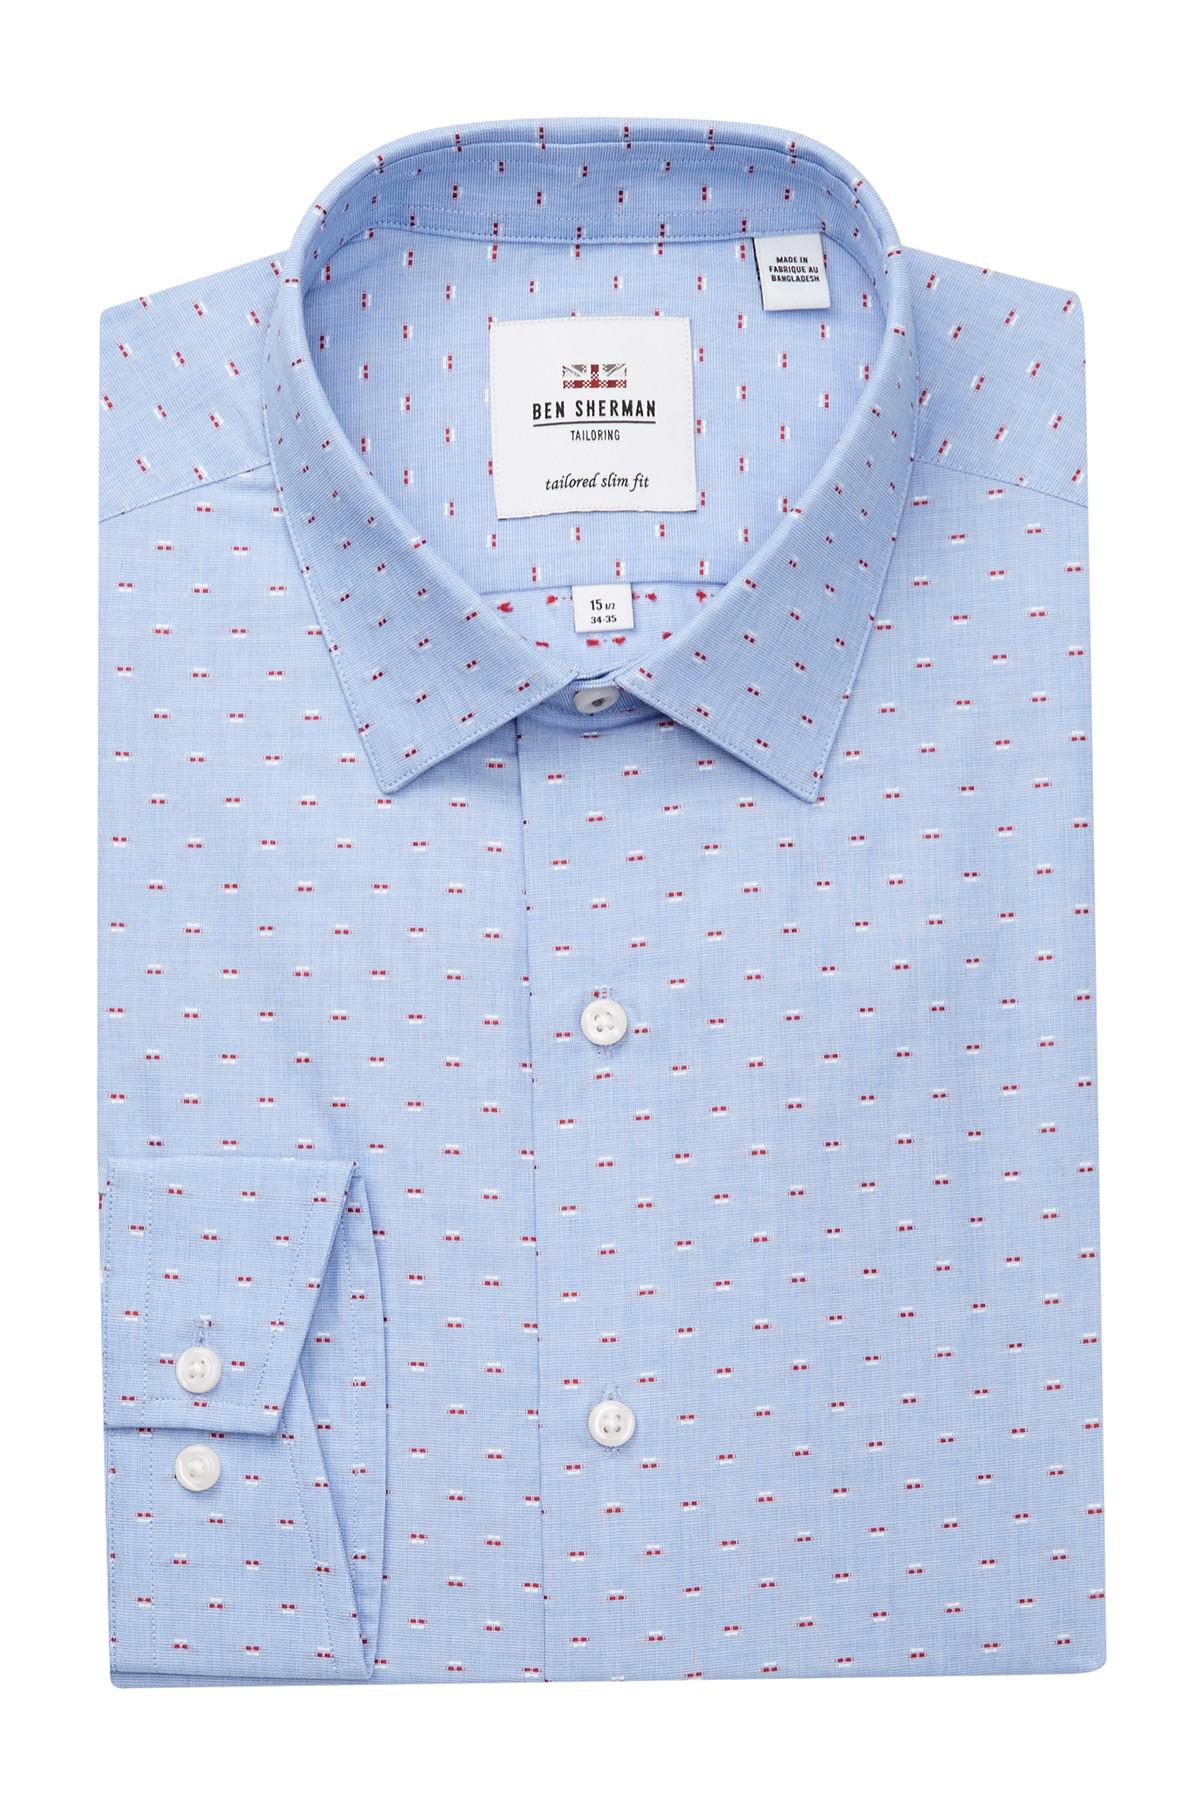 Ben Sherman Spotted Tailored Slim Fit Dress Shirt In Blue